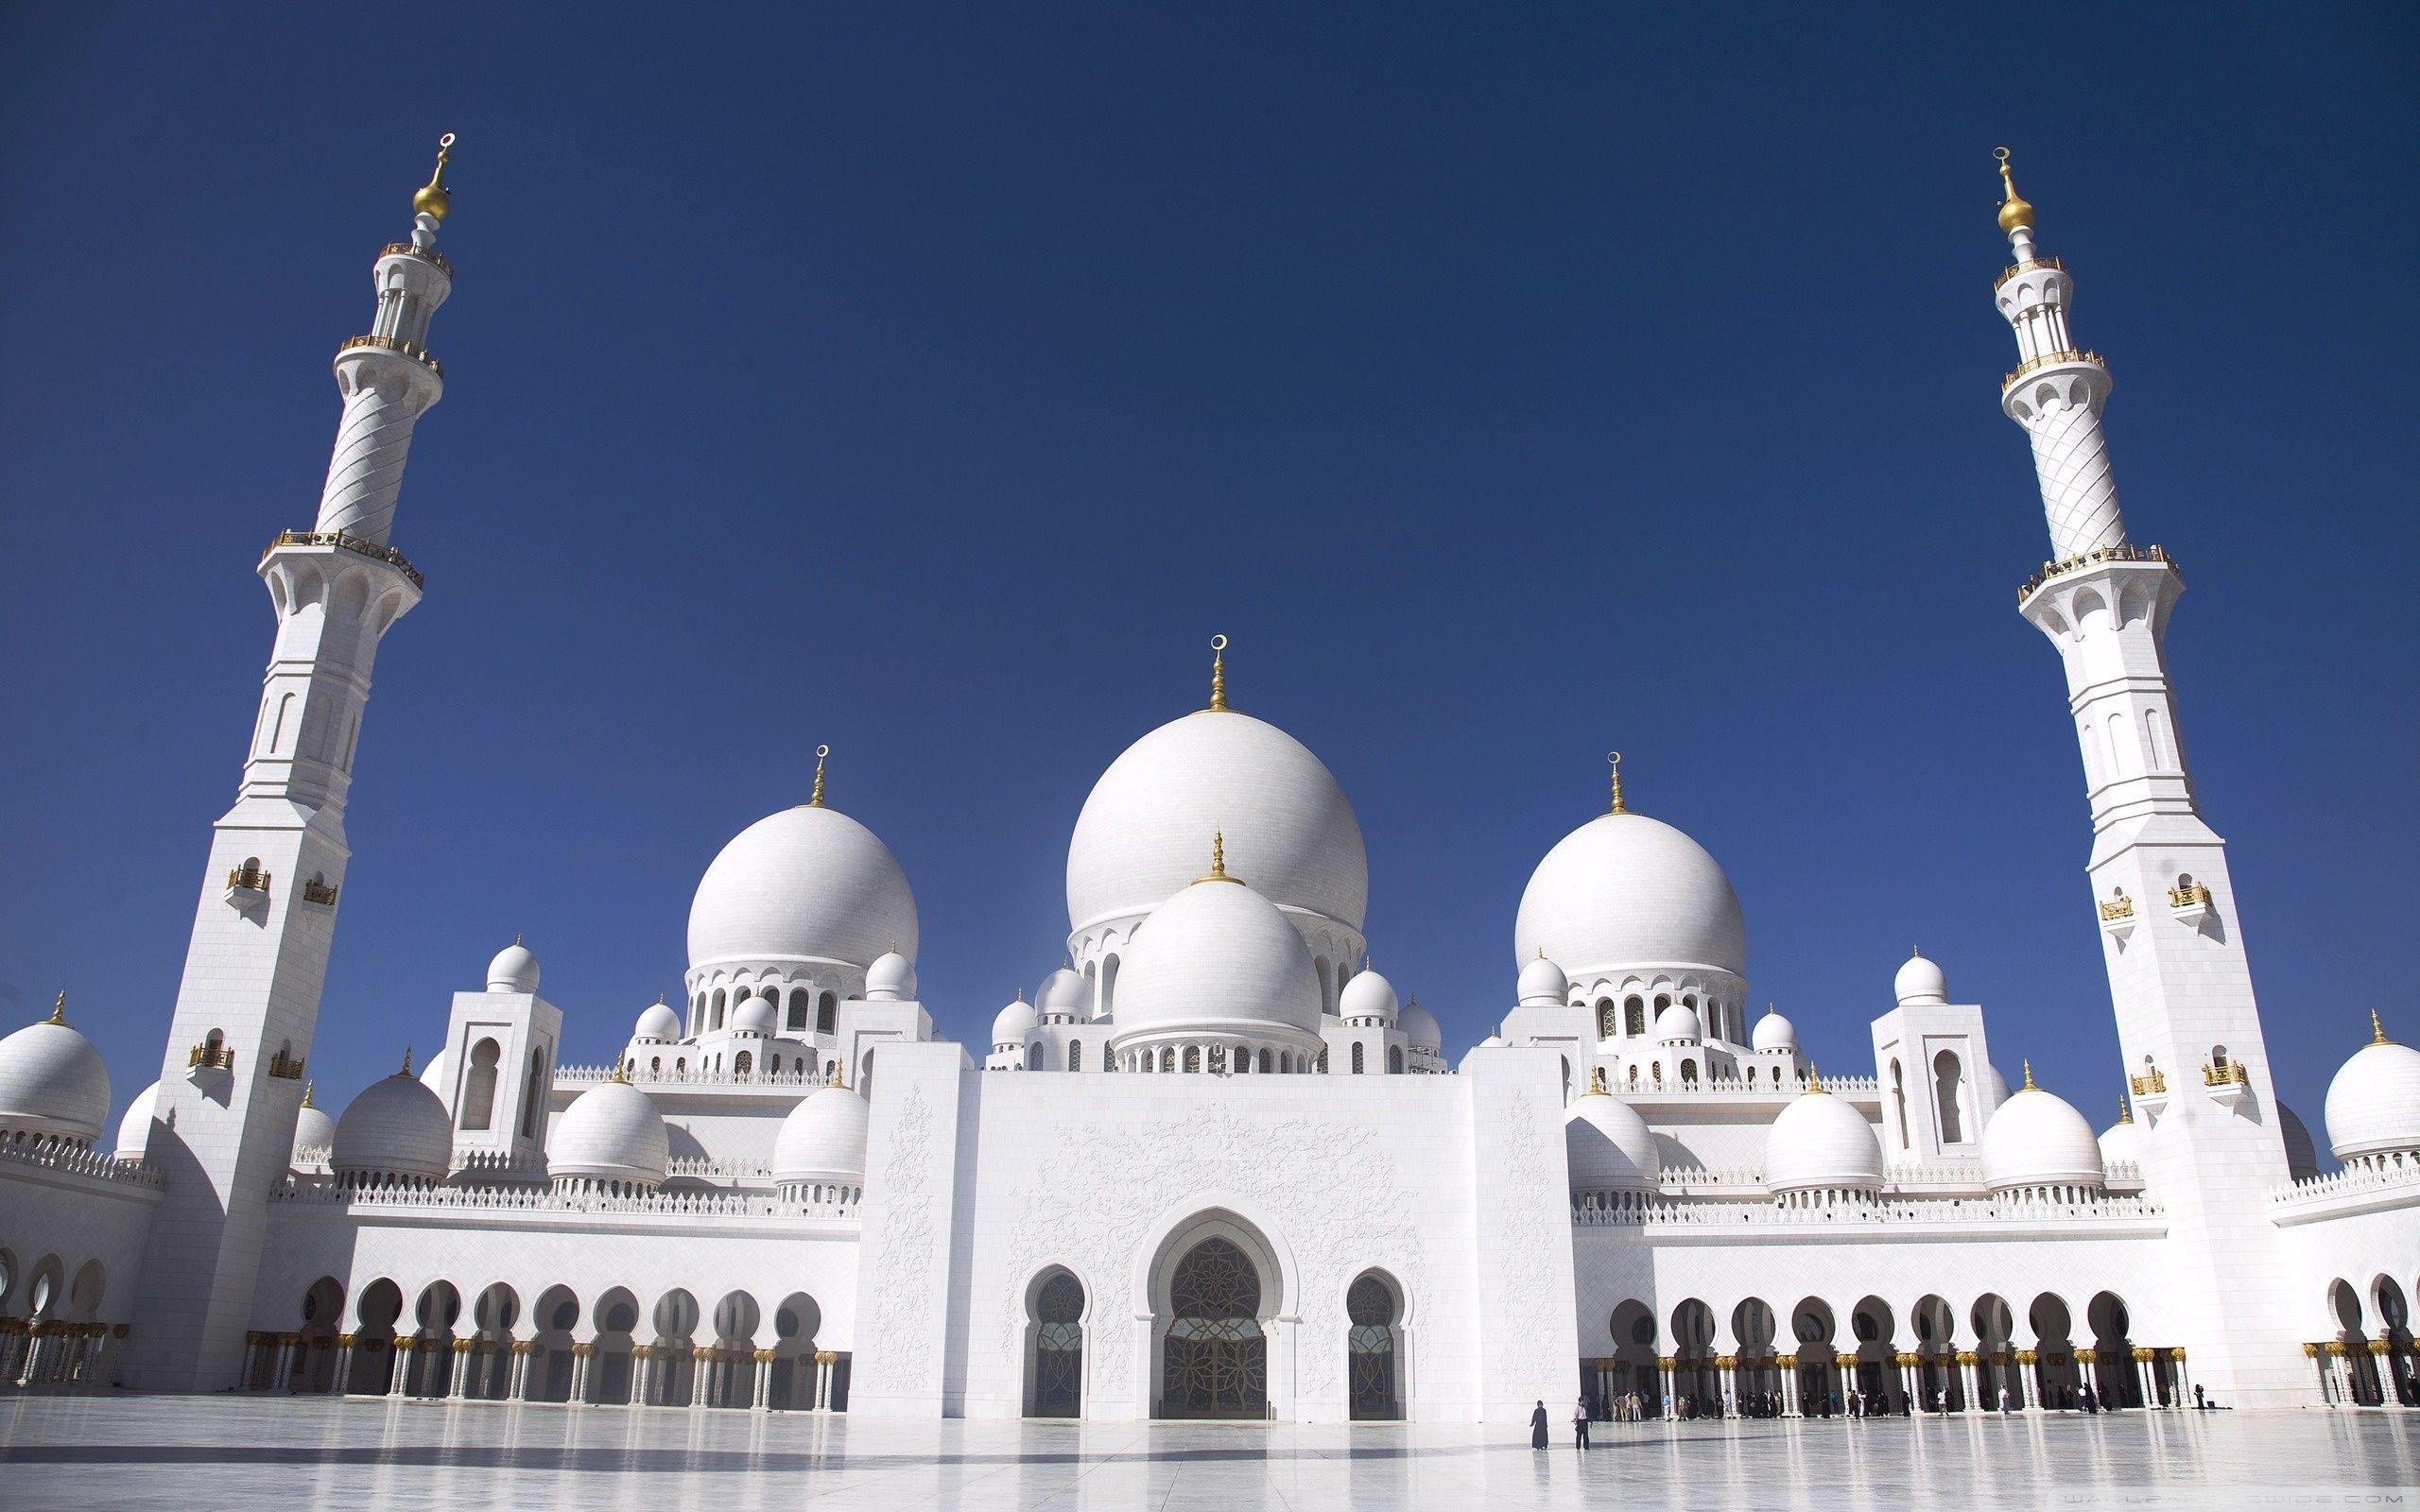 Sheikh Zayed Grand Mosque, Abu Dhabi, United Arab Emirates HD